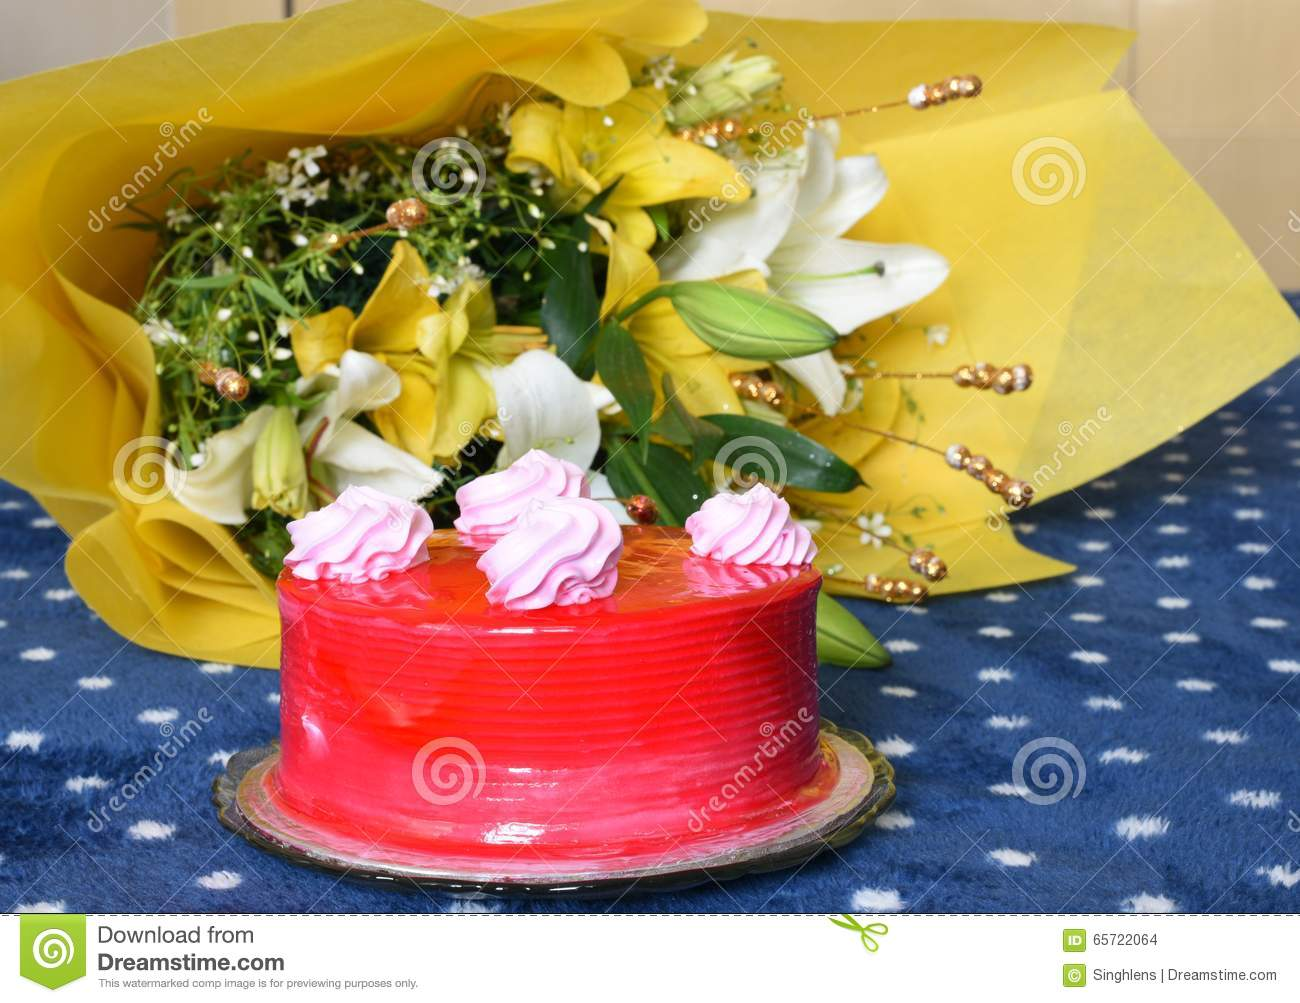 Yummy Strawberry Birthday Cakes With Lovely Wrapped Flower Bouquet